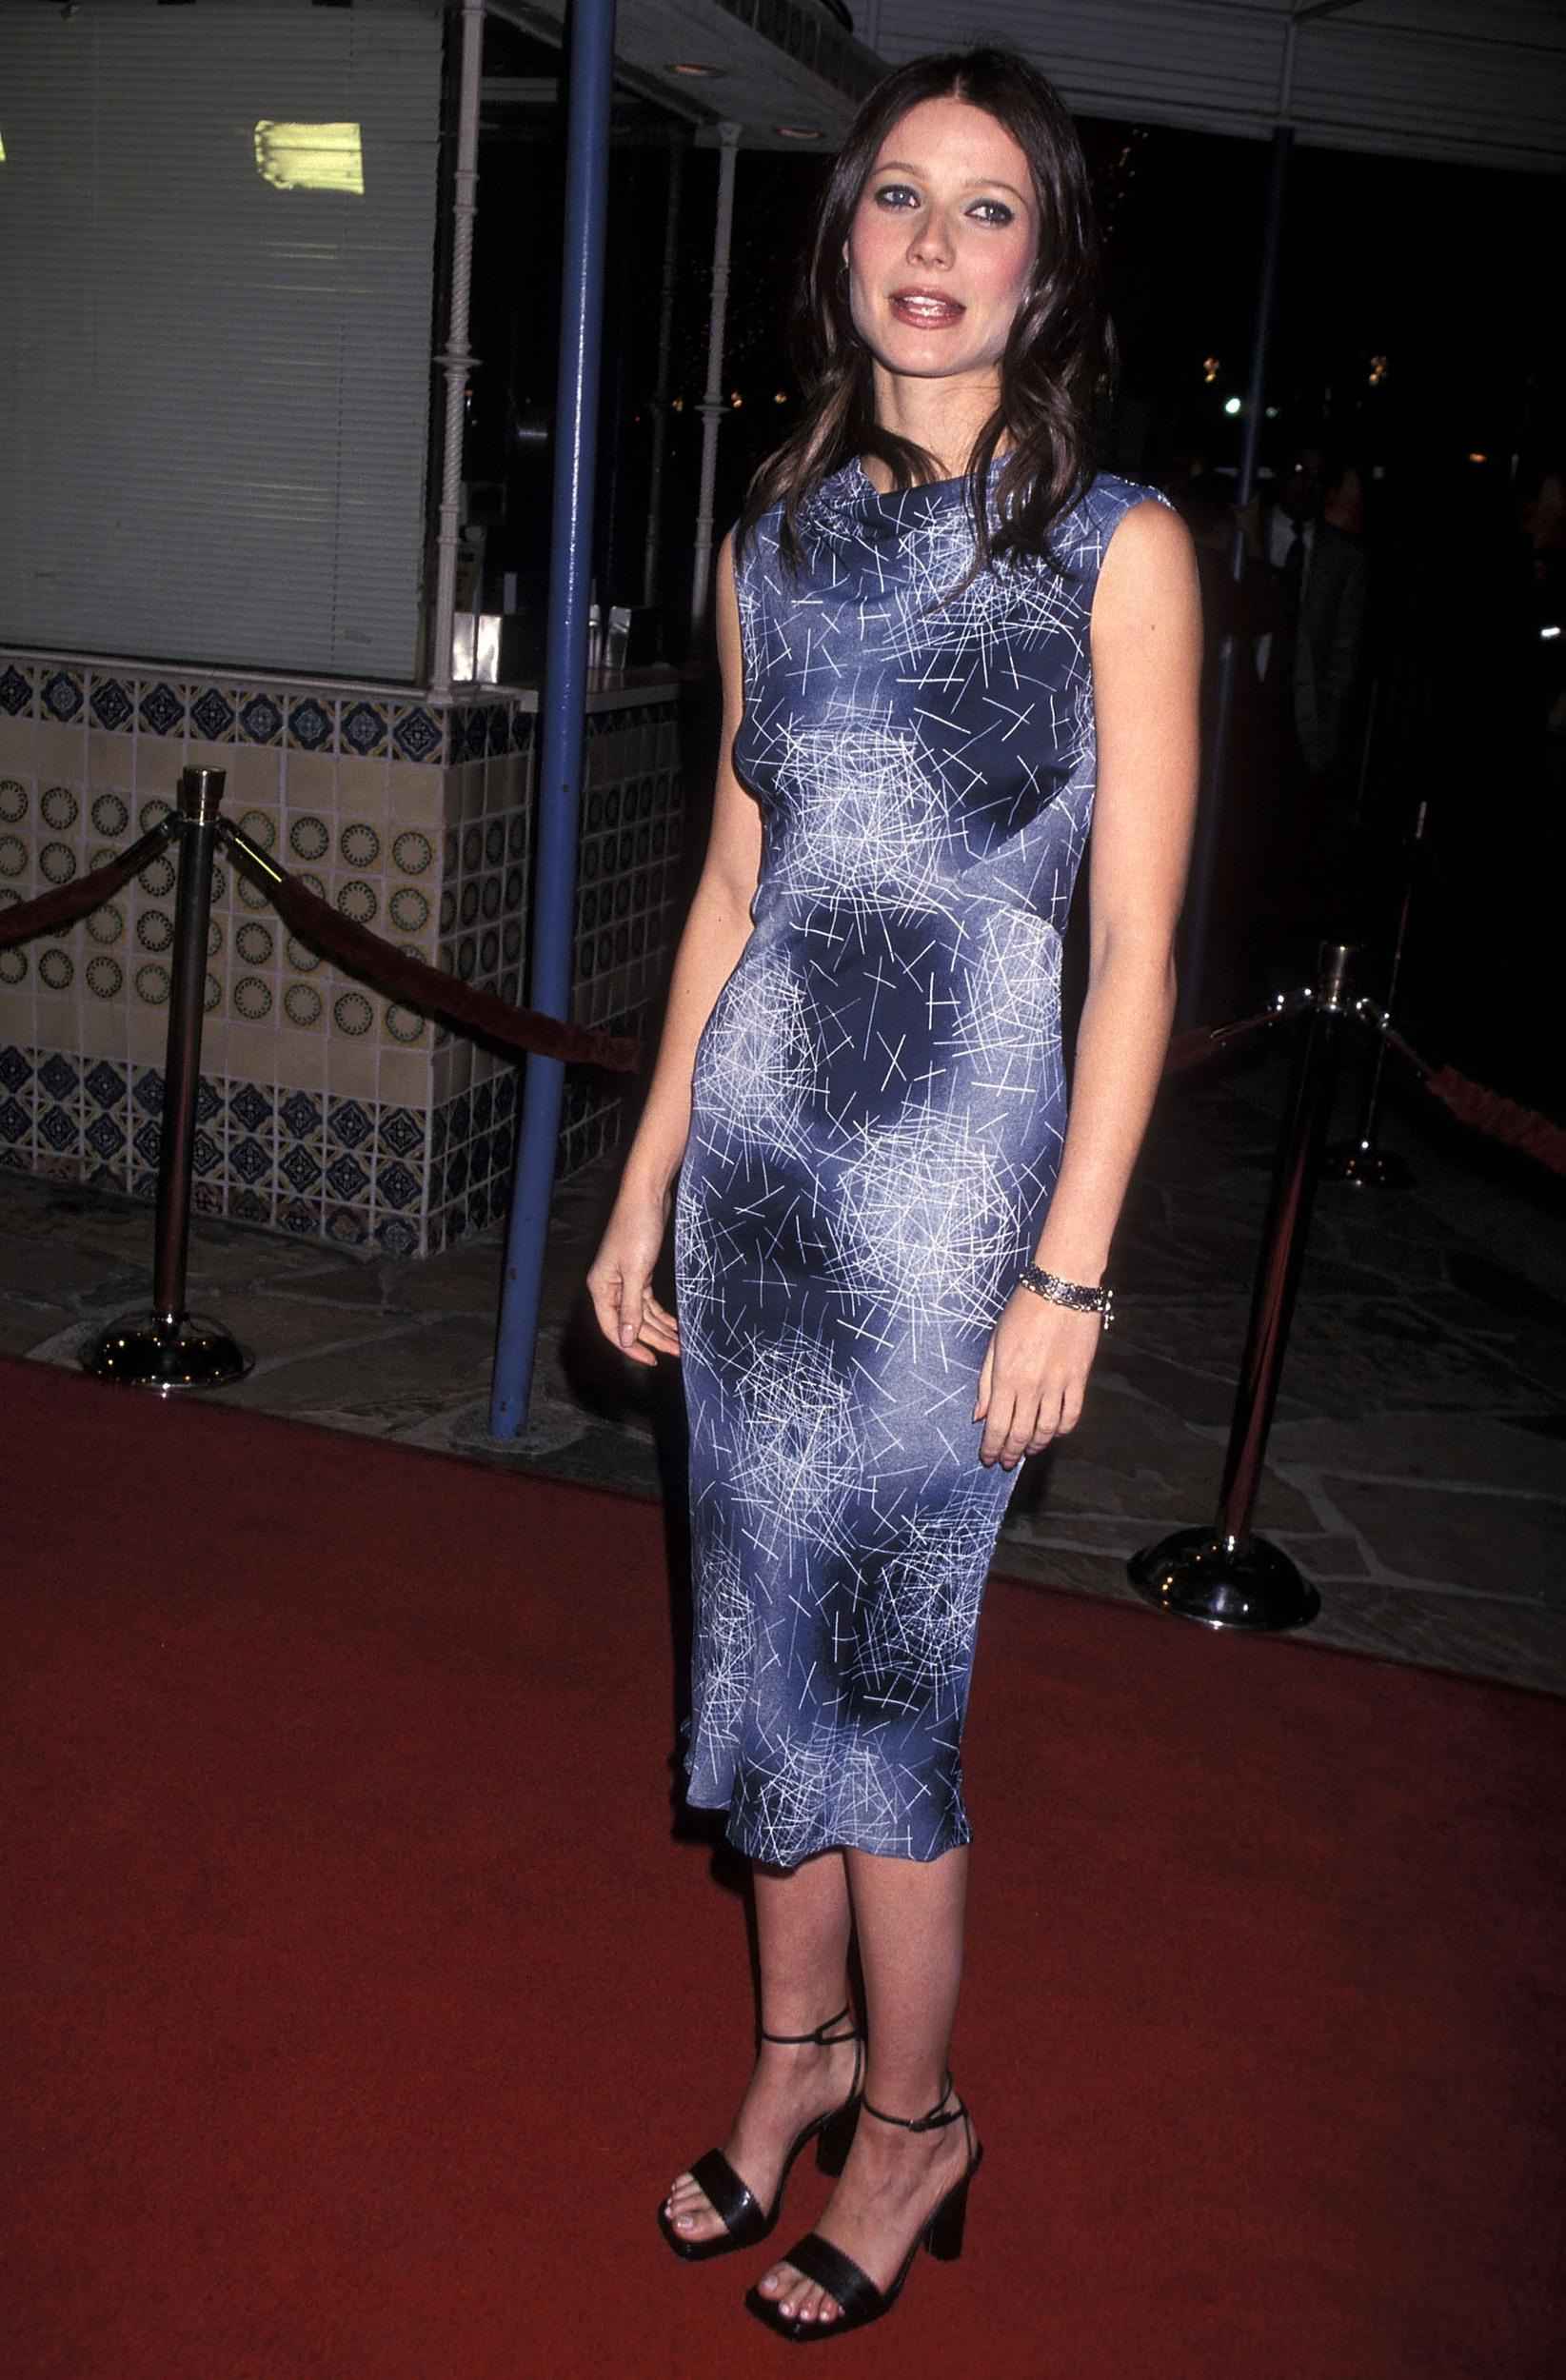 Actress Gwyneth Paltrow attends 'The Talented Mr. Ripley' Westwood Premiere on December 12, 1999 at Mann Village Theatre in Westwood, California. (Photo by Ron Galella, Ltd./WireImage)